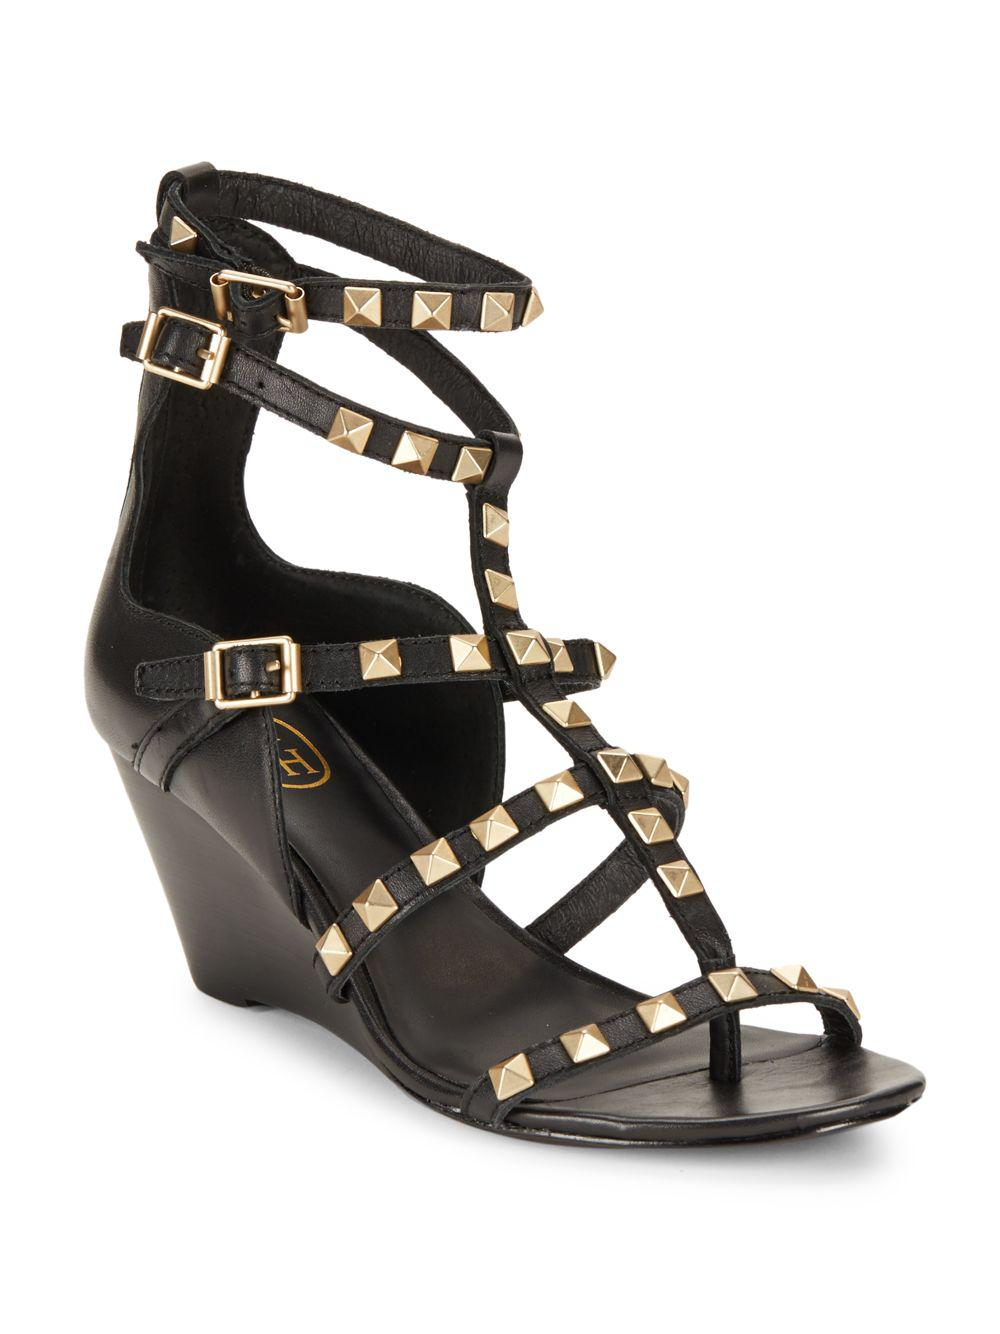 fcc449fdbf4d Lyst - Ash Dafne Leather Studded Wedge Shoes in Black